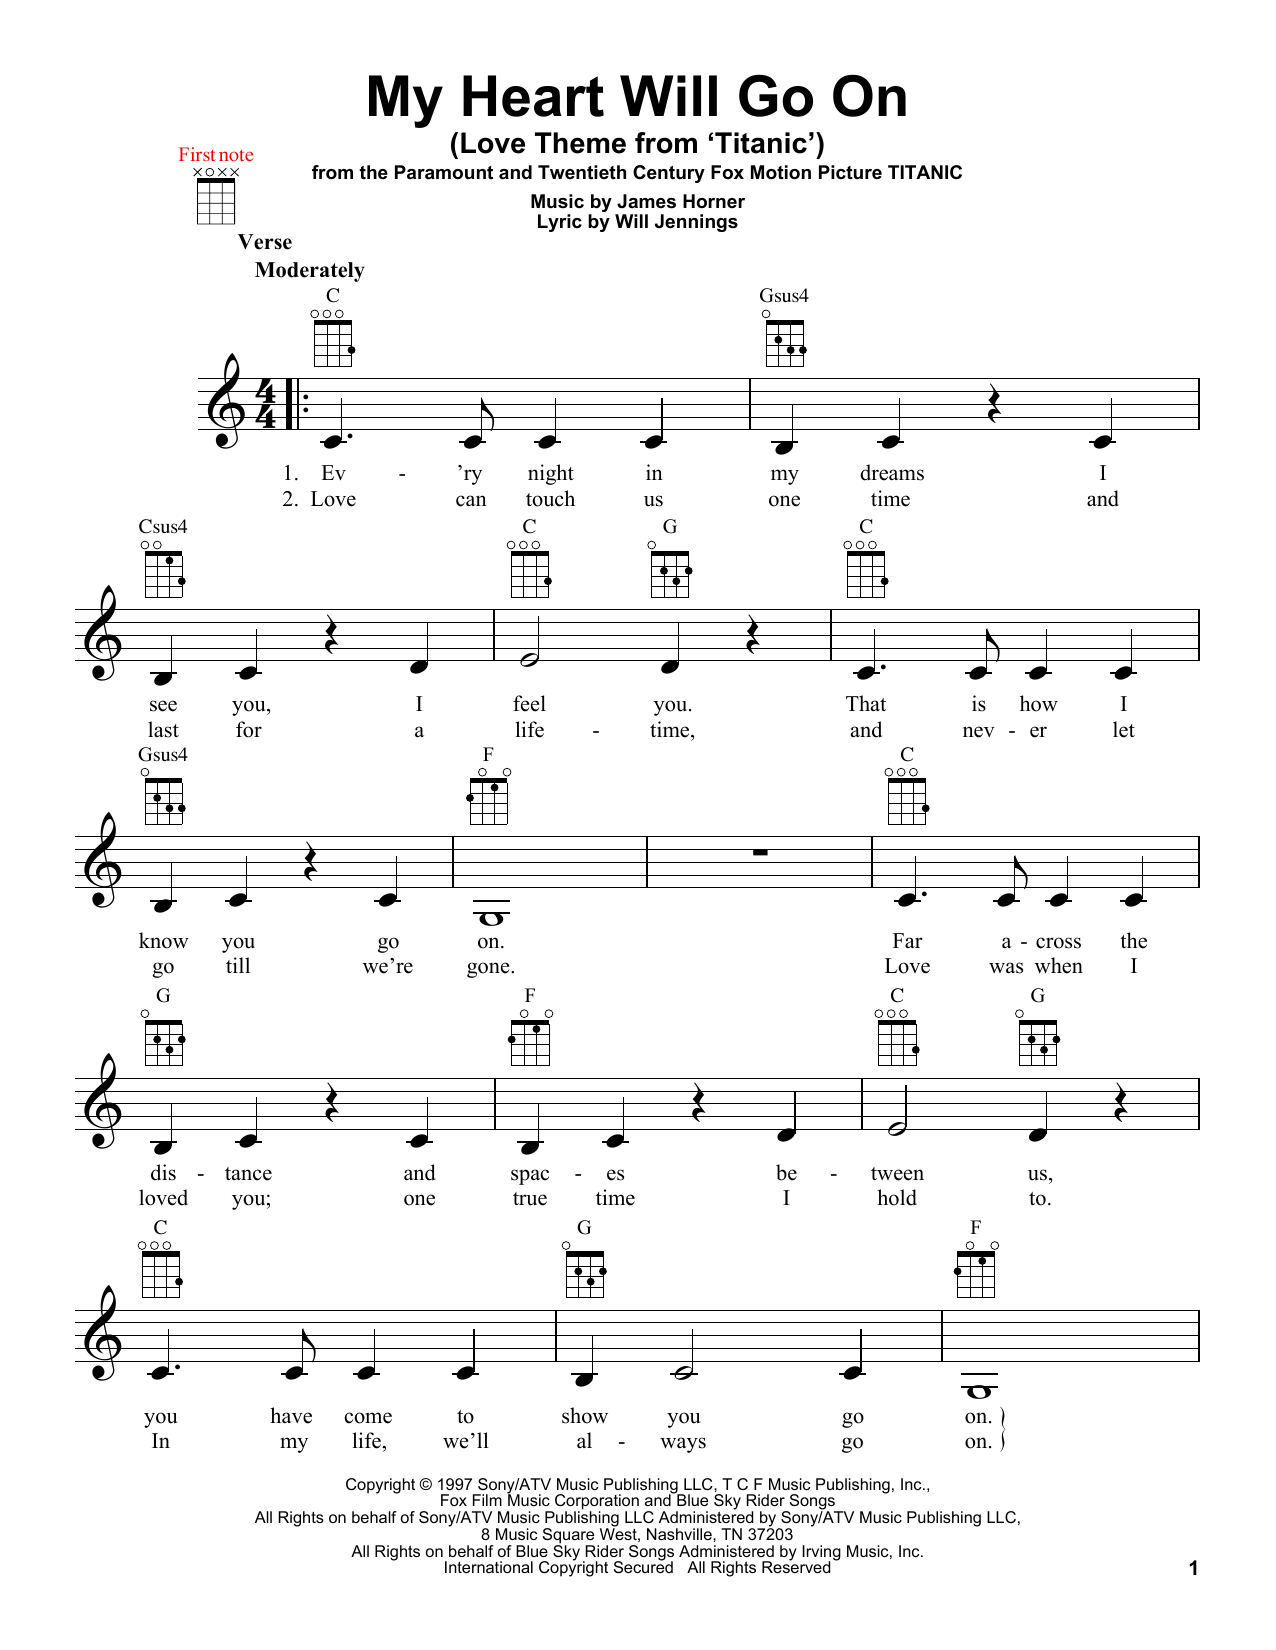 Celine Dion My Heart Will Go On (Love Theme From 'Titanic') sheet music notes and chords